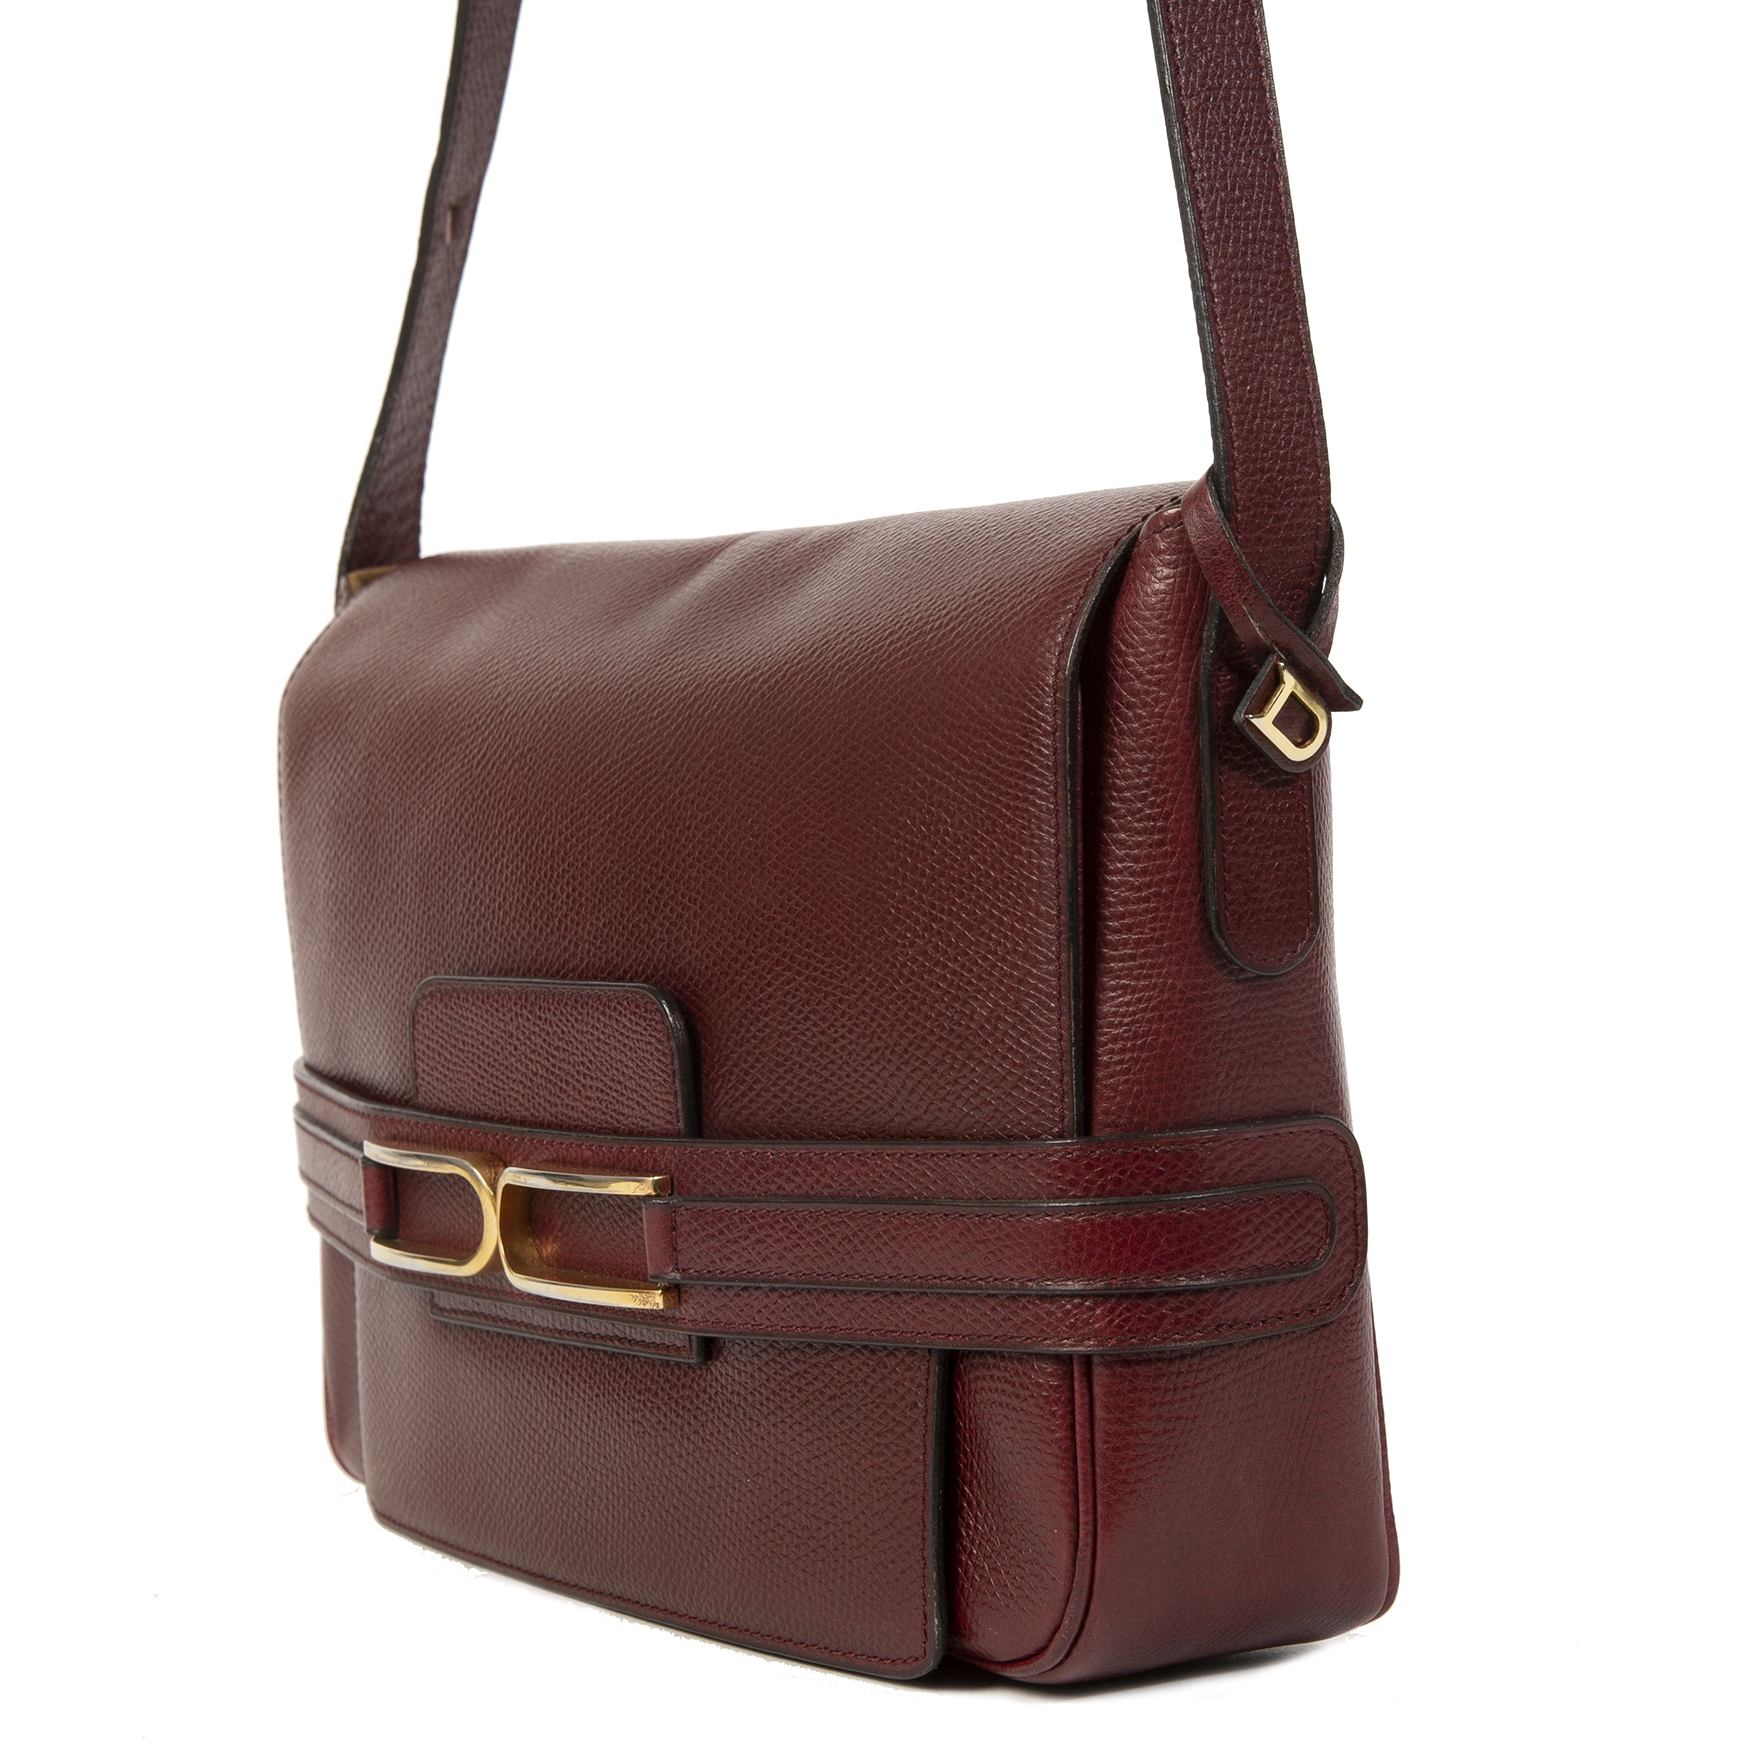 acheter en ligne seconde main Delvaux Bordeaux Crossbody Box Bag